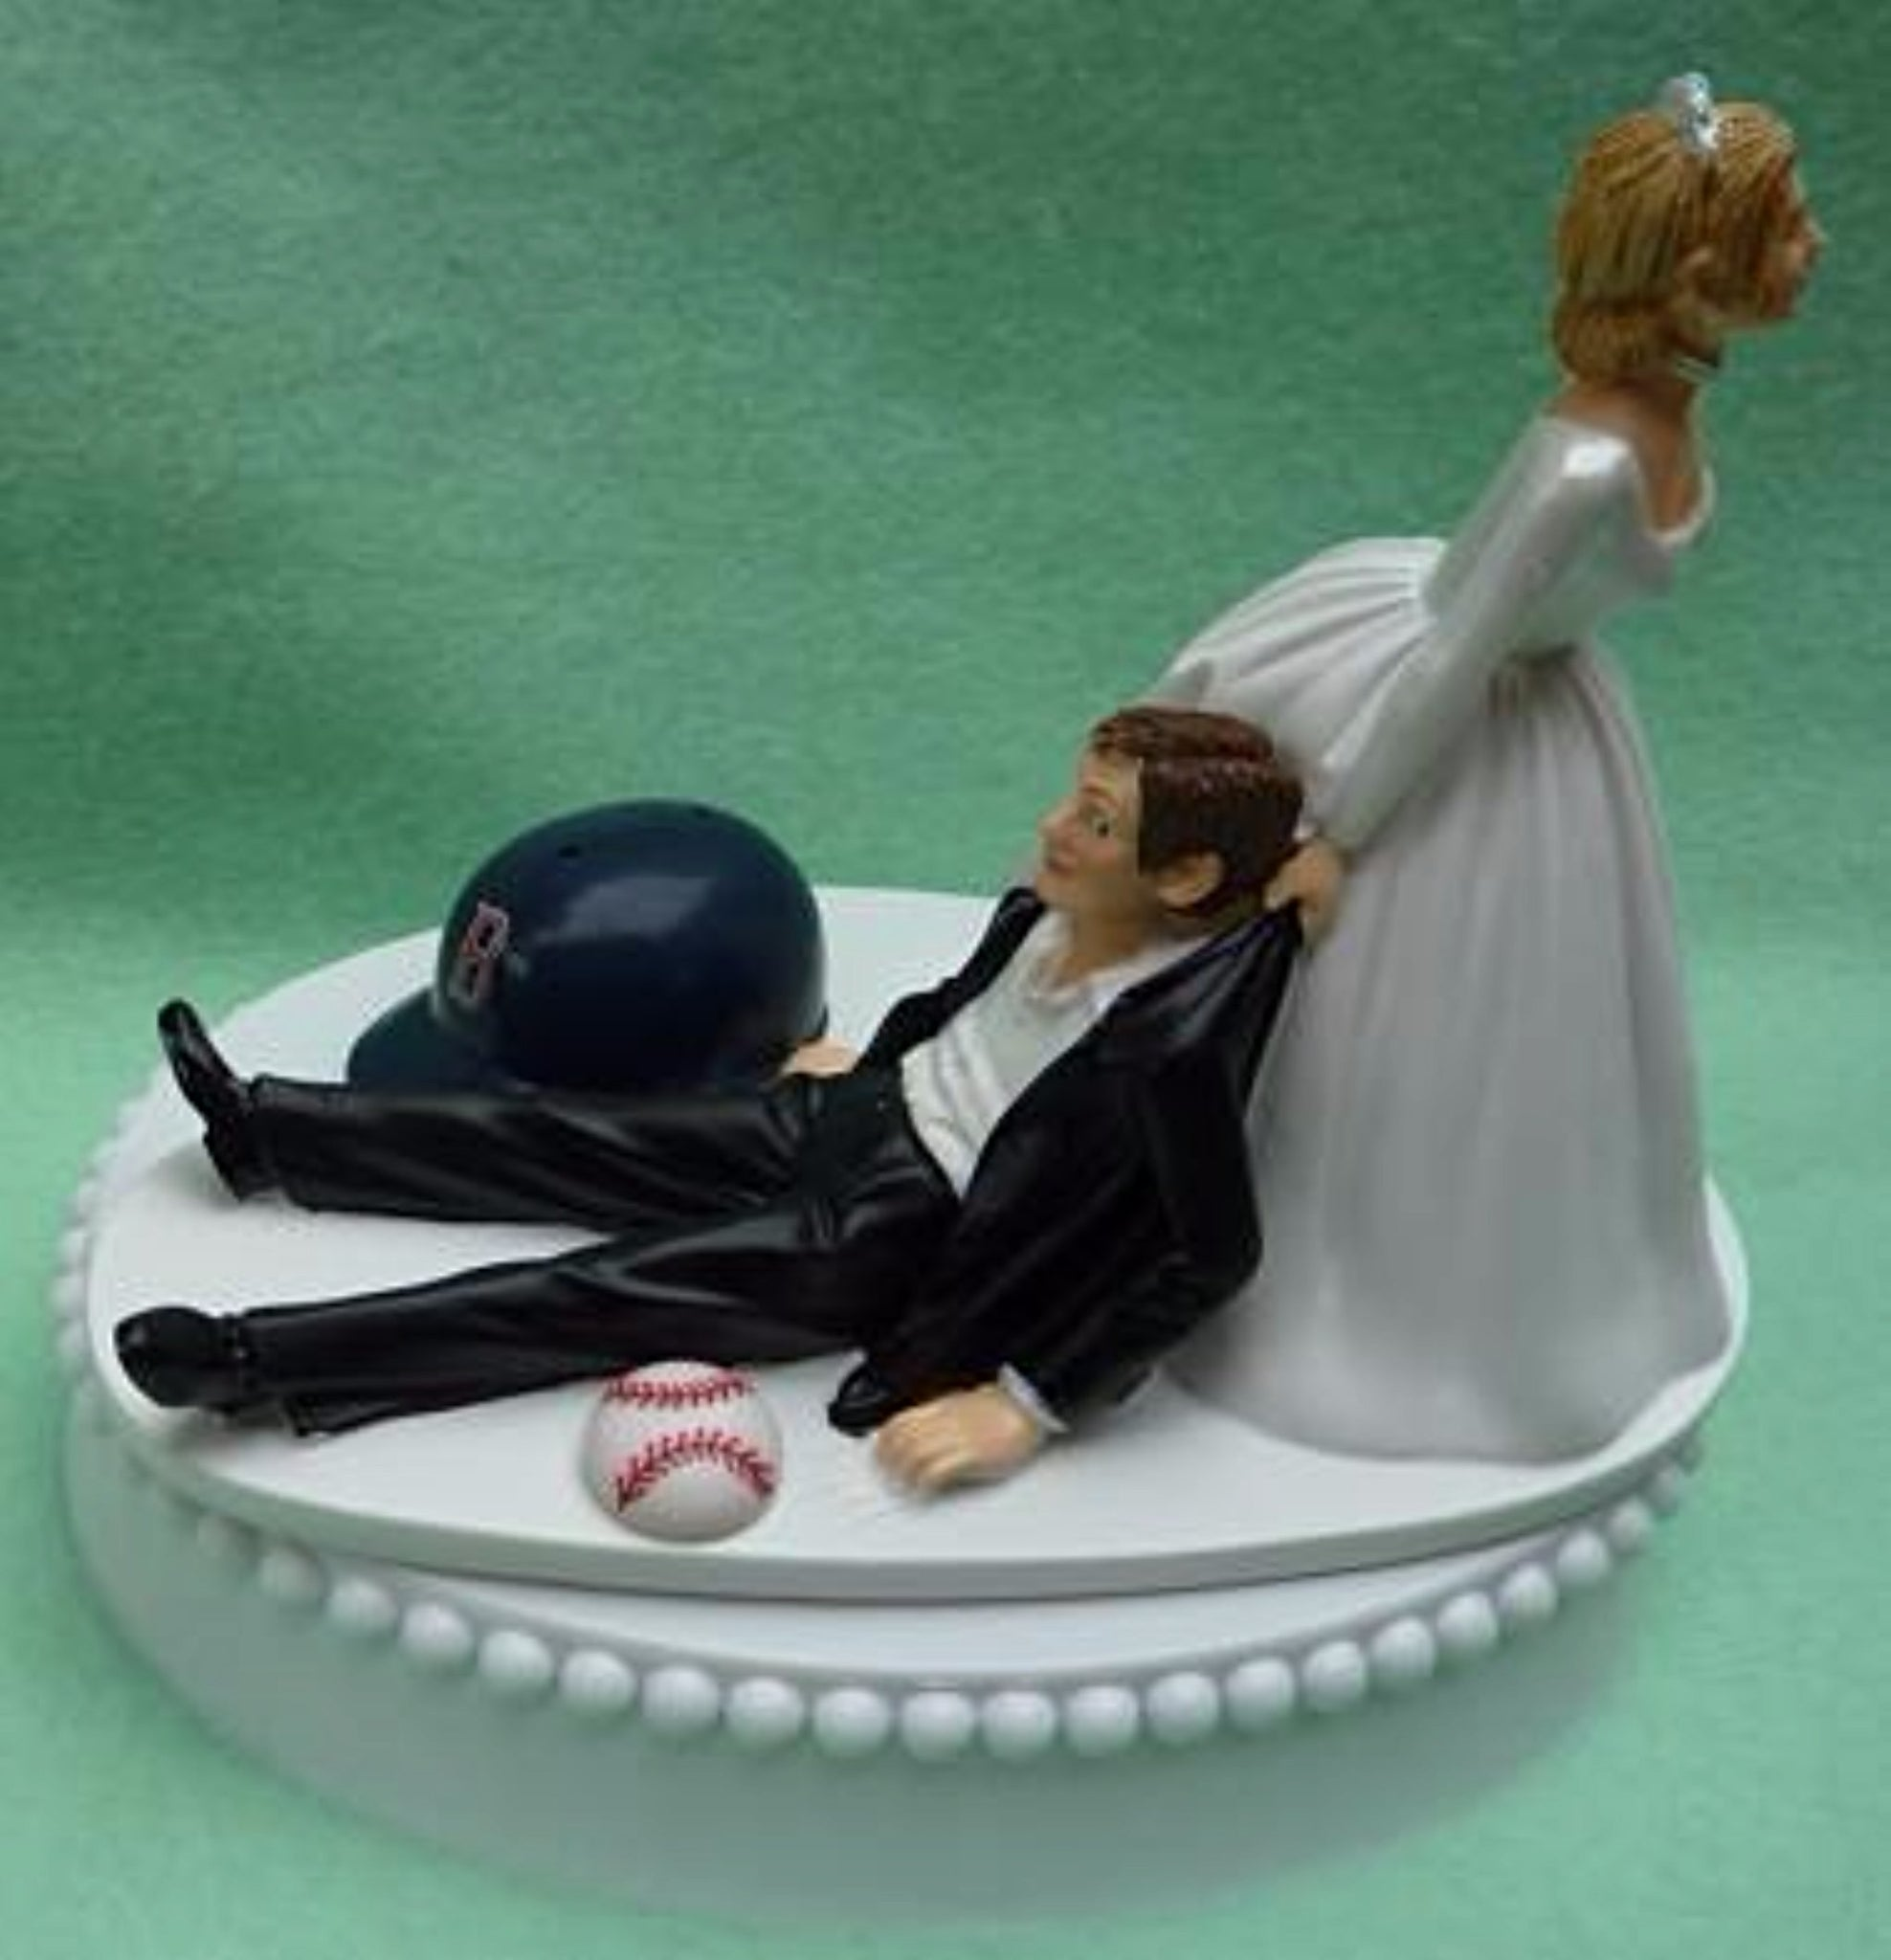 Red Sox wedding cake topper Boston baseball MLB groom's cake top green turf humorous funny reception